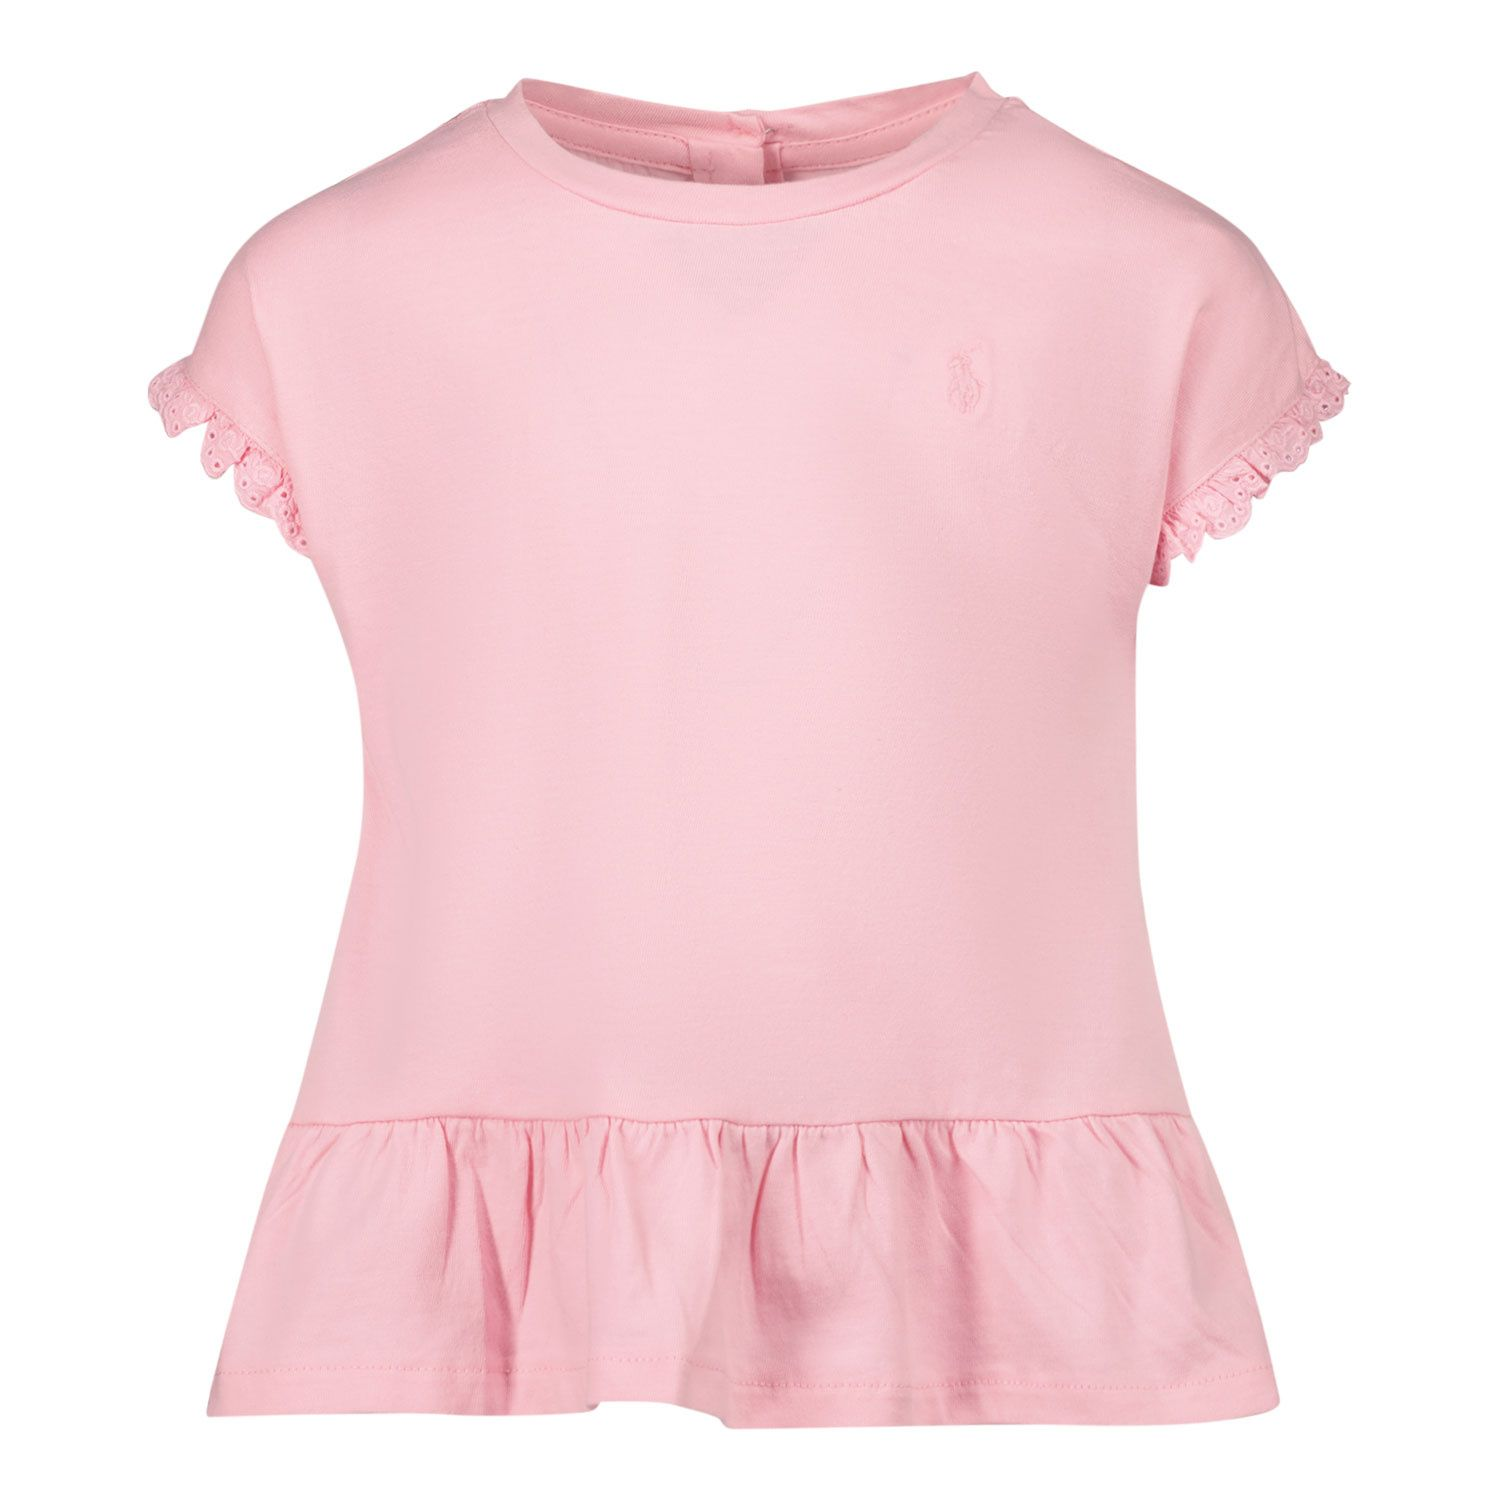 Picture of Ralph Lauren 310835111 baby shirt pink